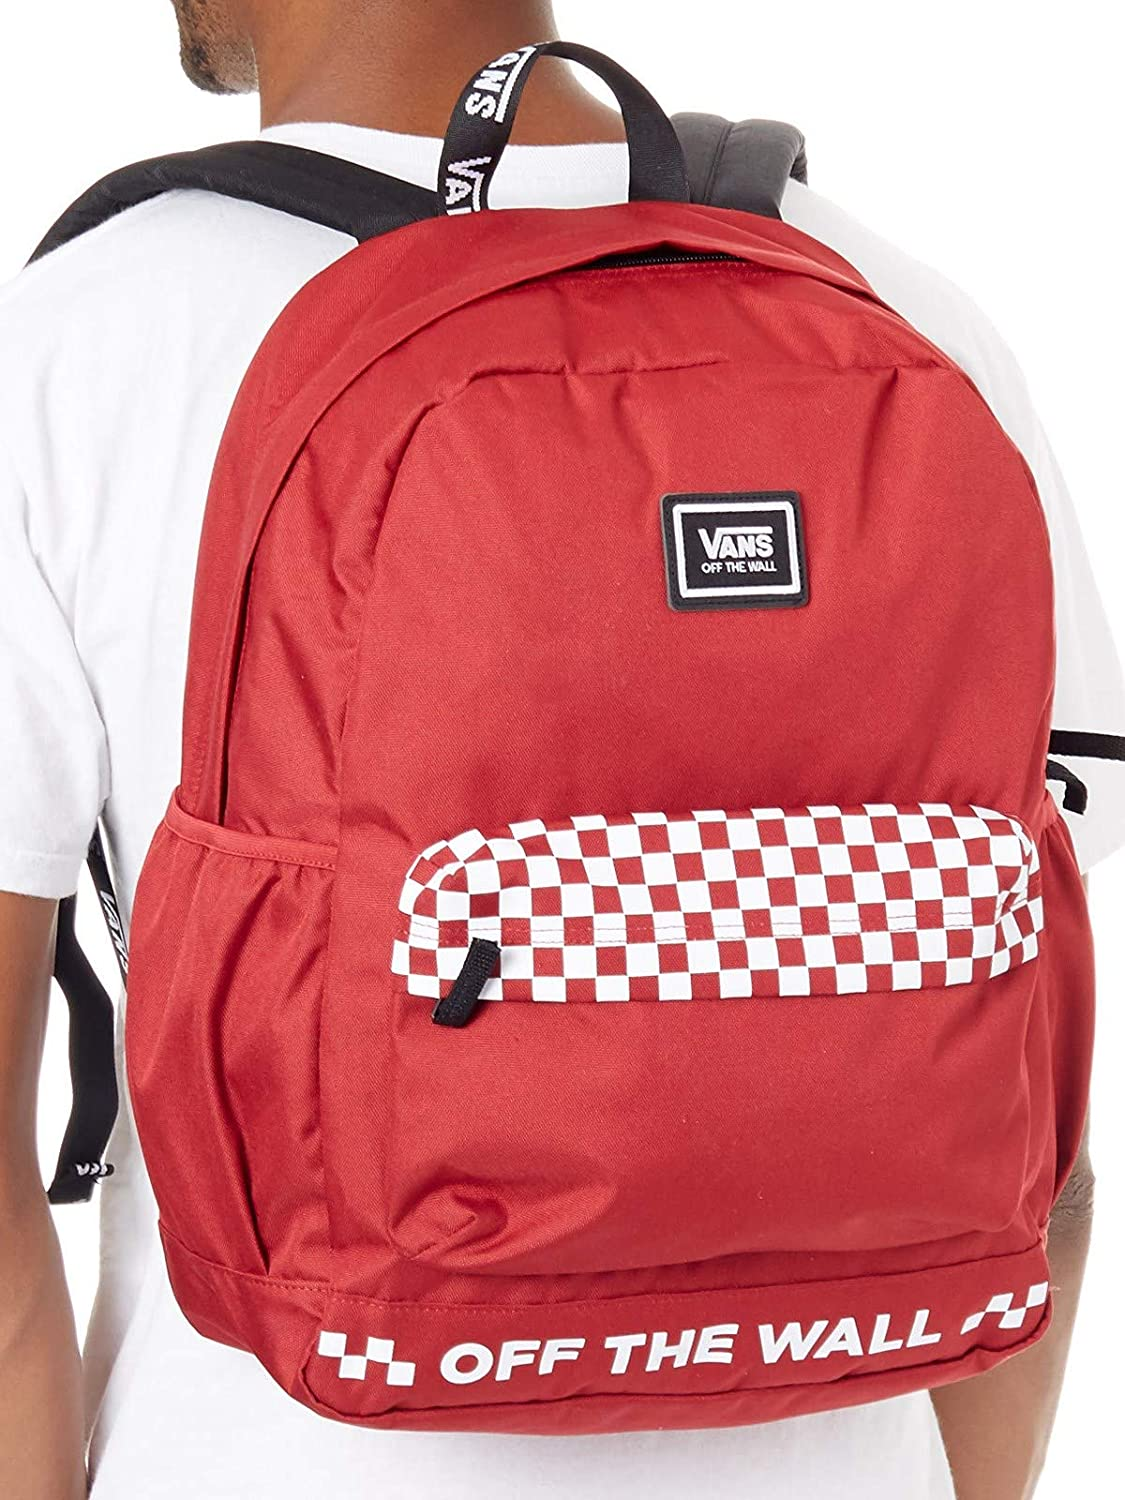 VANS - MOCHILA - WM SPORTY REALM PLUS SCOOTER - ROJO (TALLA UNICA): Amazon.es: Equipaje